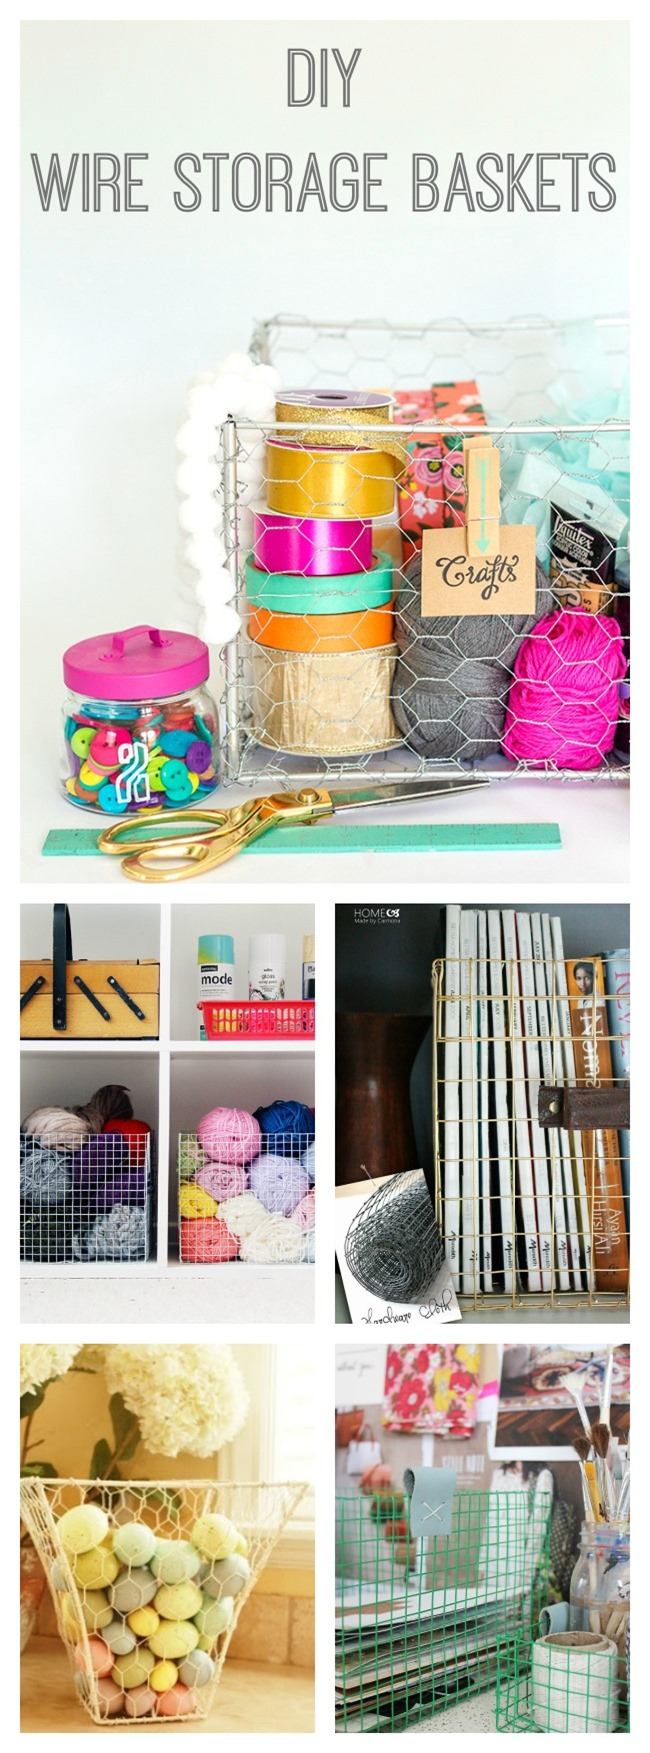 DIY Wire Baskets - Craft Room Storage {DIY Organization} - EverythingEtsy.com